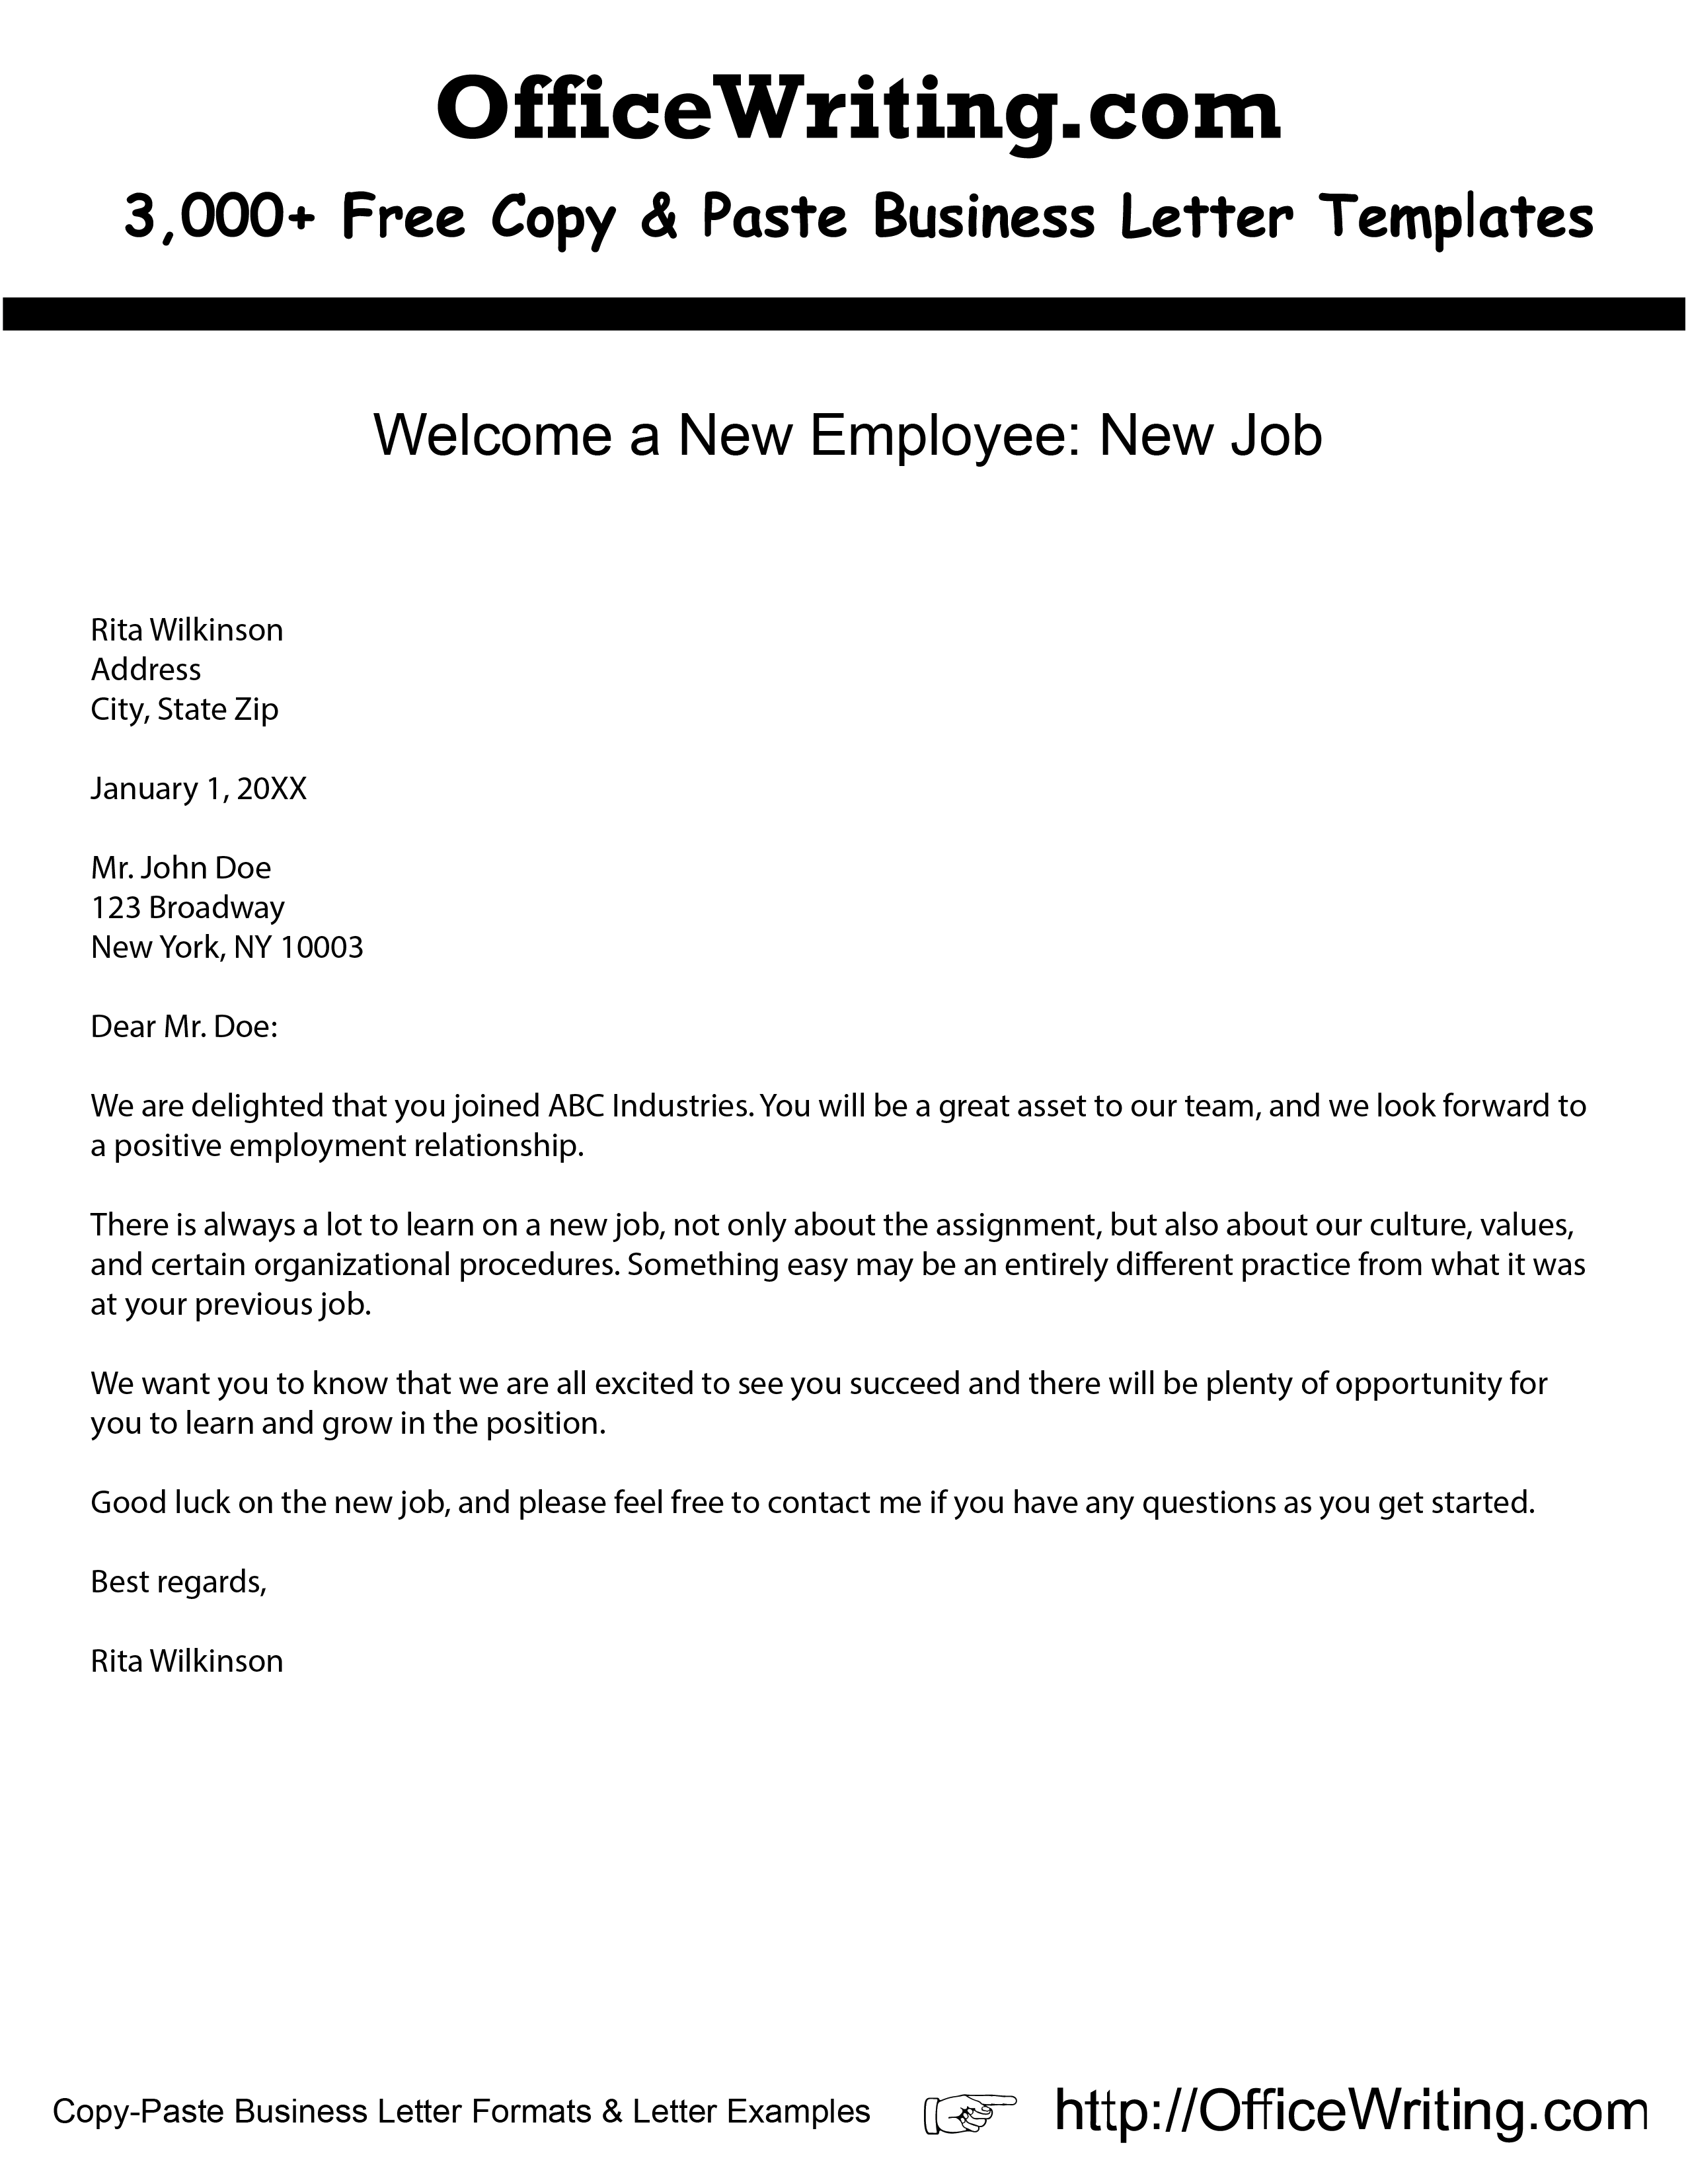 Sample Welcome Letter New Employee from i.pinimg.com